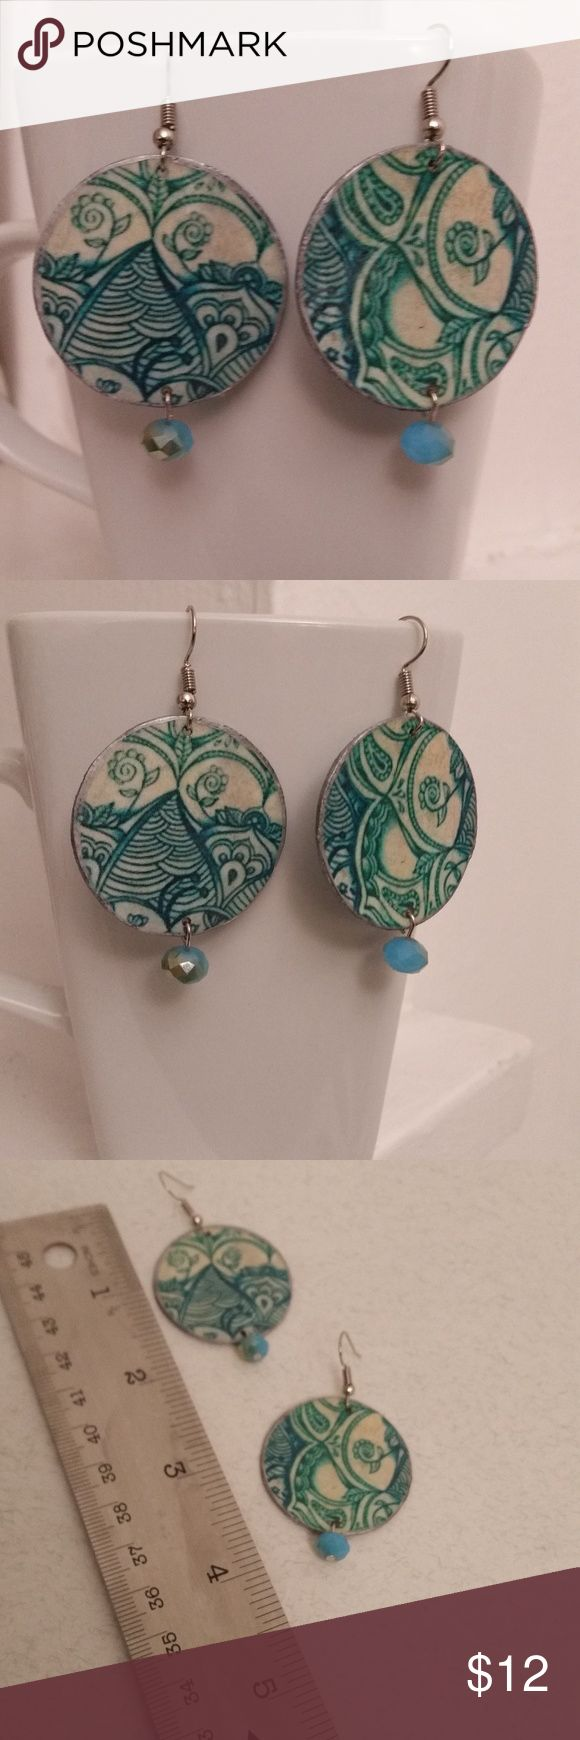 Hand Crafted - Blue Wallpaper Paper Earring - OOAK This is a set of OOAK hand made paper earrings.  This is made out of recycled cardboard, decoupage glue, blue beads and ear wires. It measures 1 /2 inches long and 1 3/8 inches wide. This is set of earring were made in the USA from a pet free and smoke free environment.  They are so light weight and unique. Christine Makes Things Jewelry Earrings